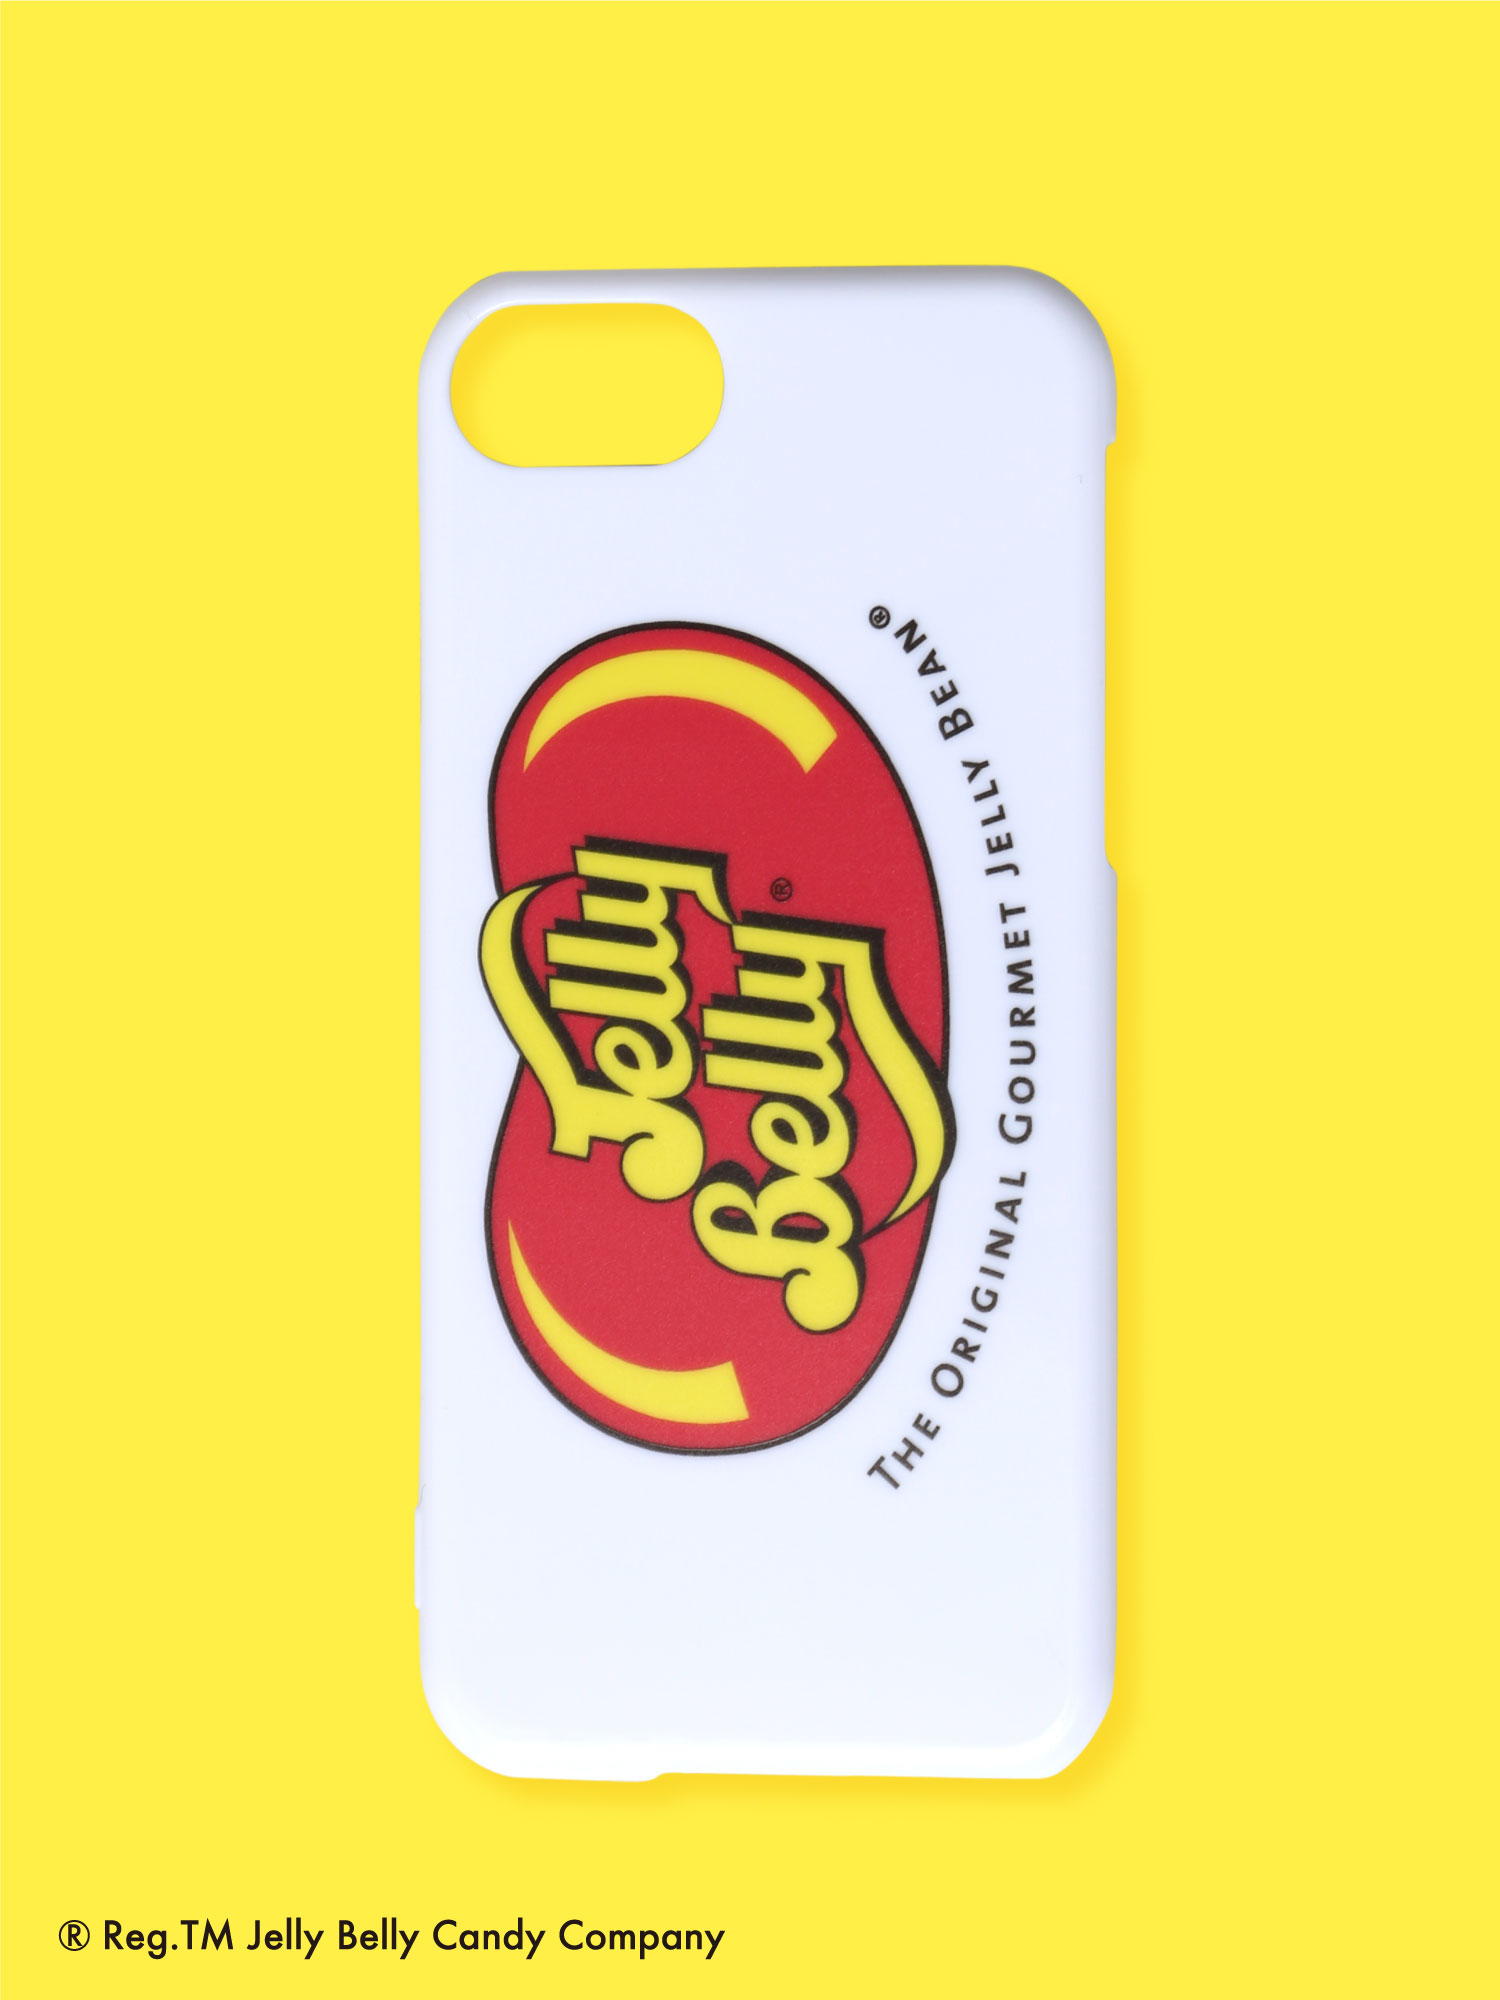 DING Jelly Belly iphone7 ケース